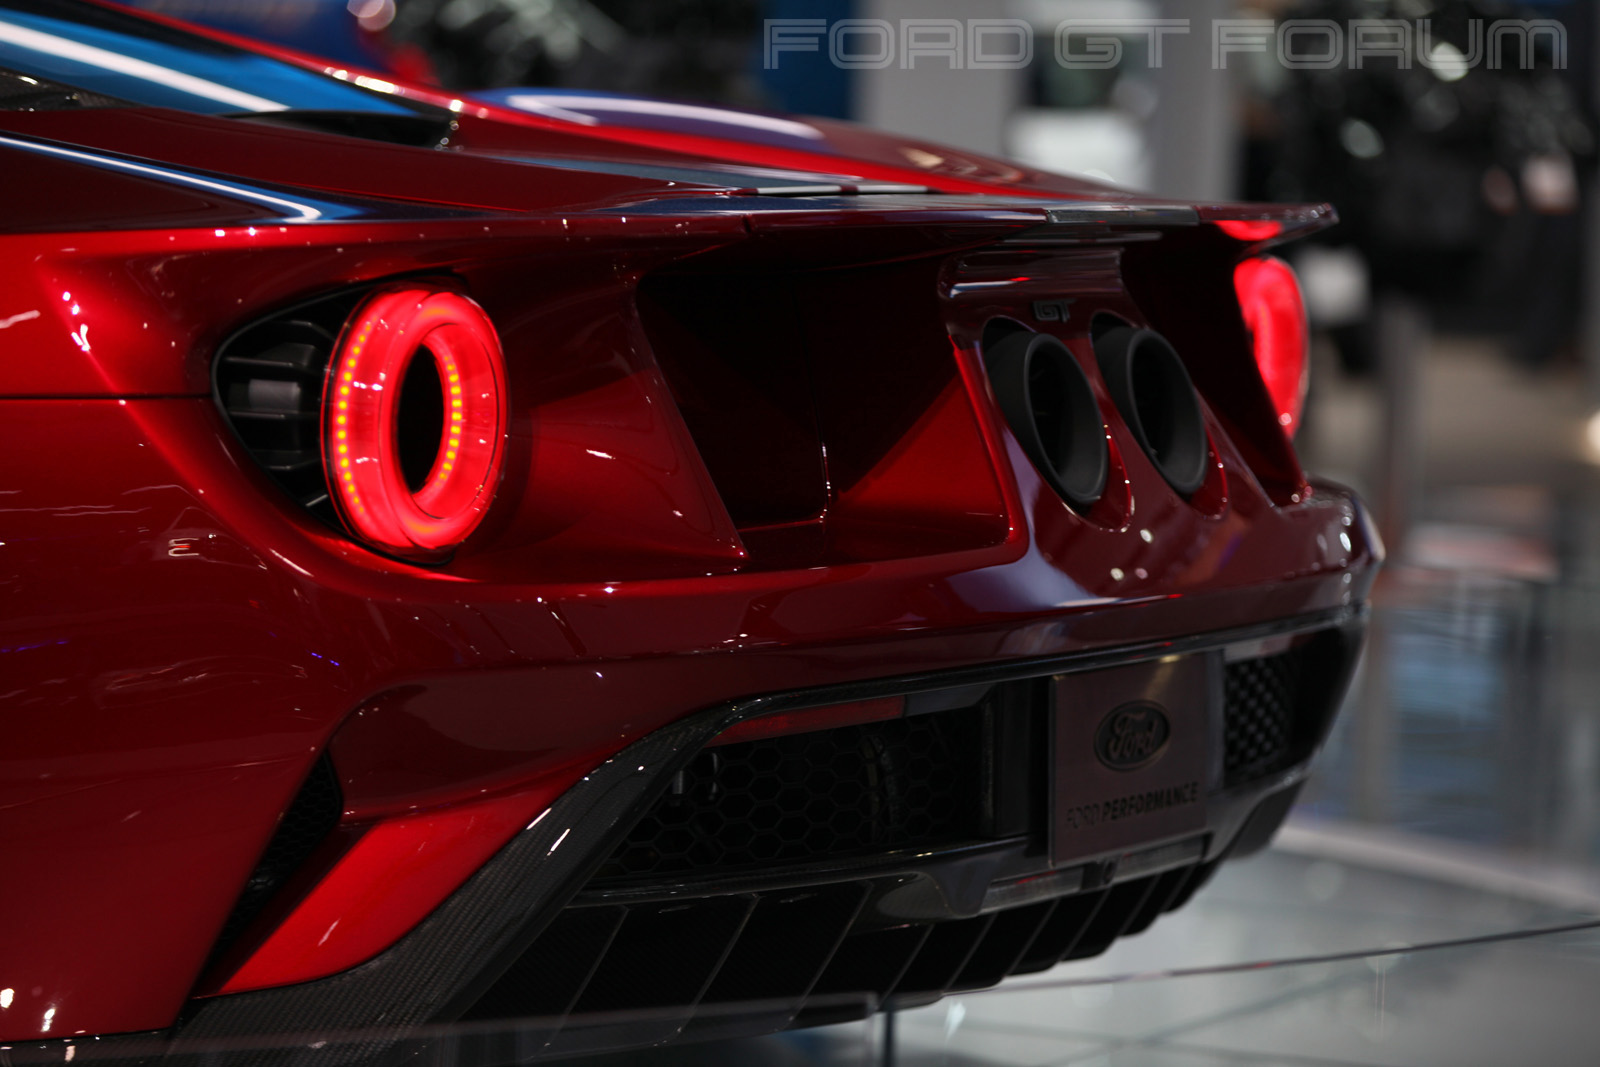 Ford-GT-Autoshow-3000-8